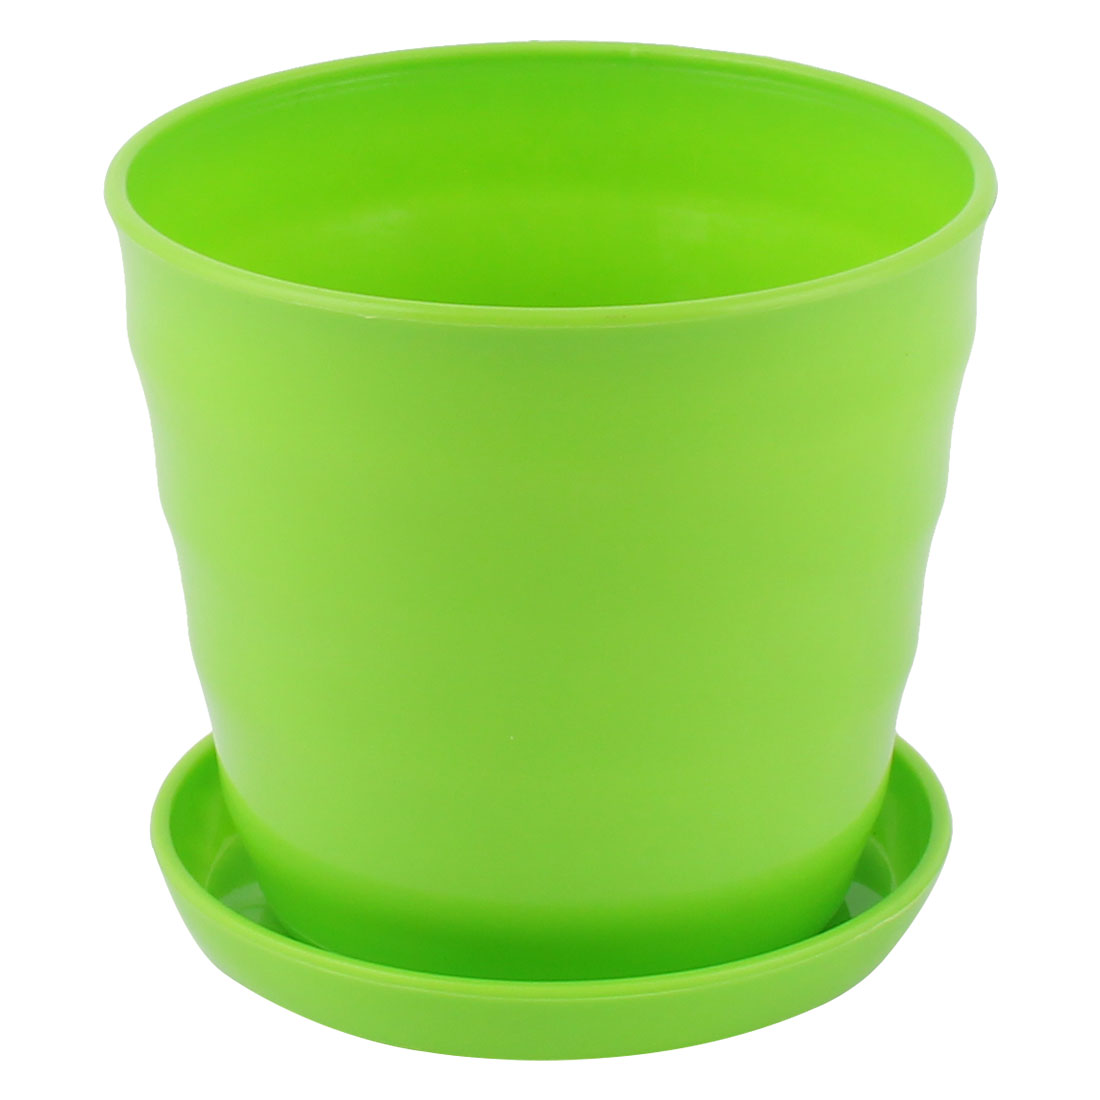 9cm Dia Green Plastic Plant Planter Holder Flower Pot Home Office Garden Decor w Tray